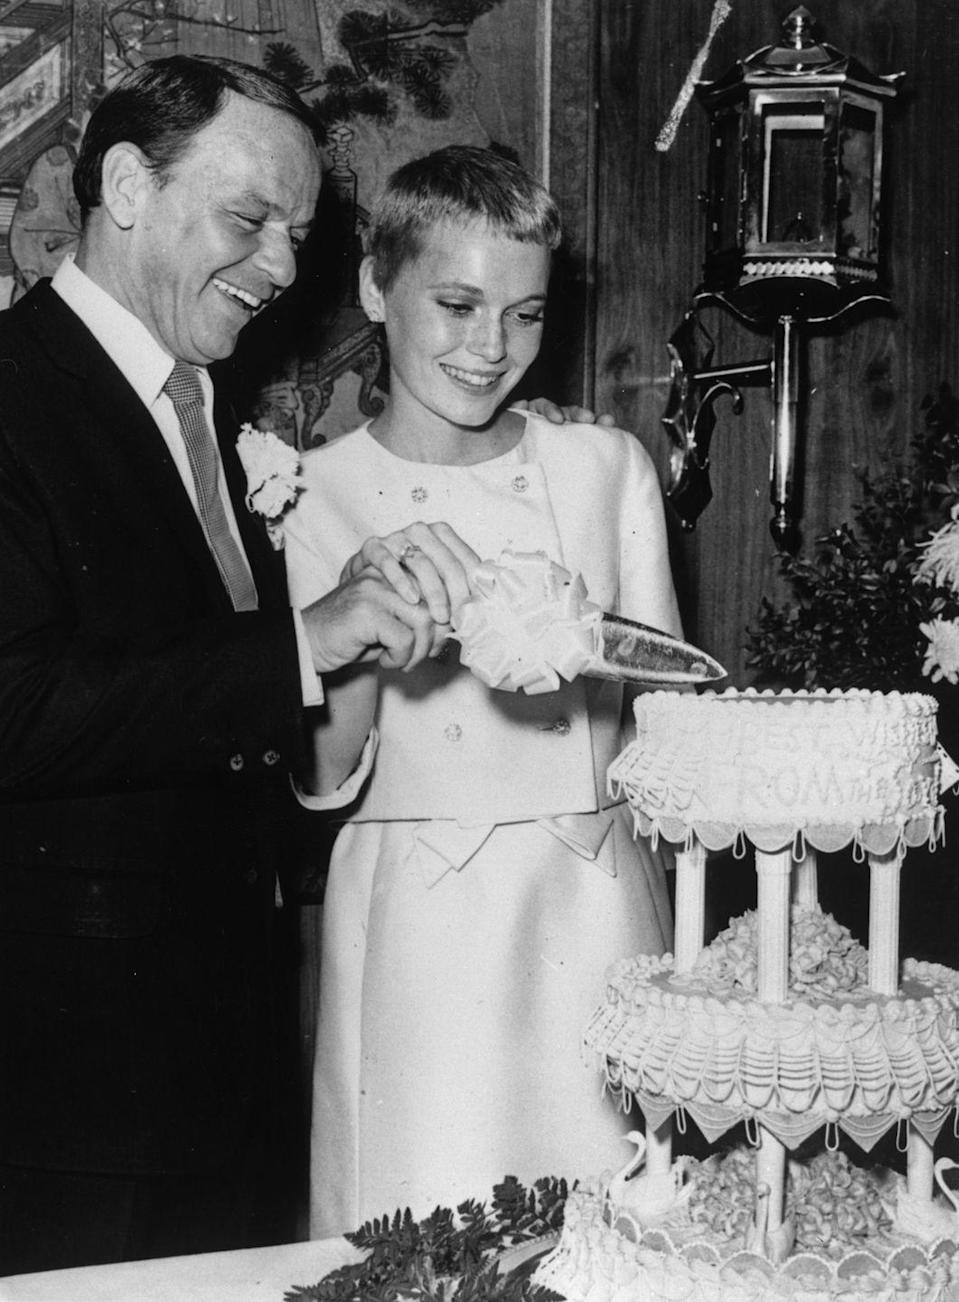 <p>Farrow and Sinatra wed at the Sands Hotel in Las Vegas only a few days later, with the bride opting for a white two-piece suit. </p>